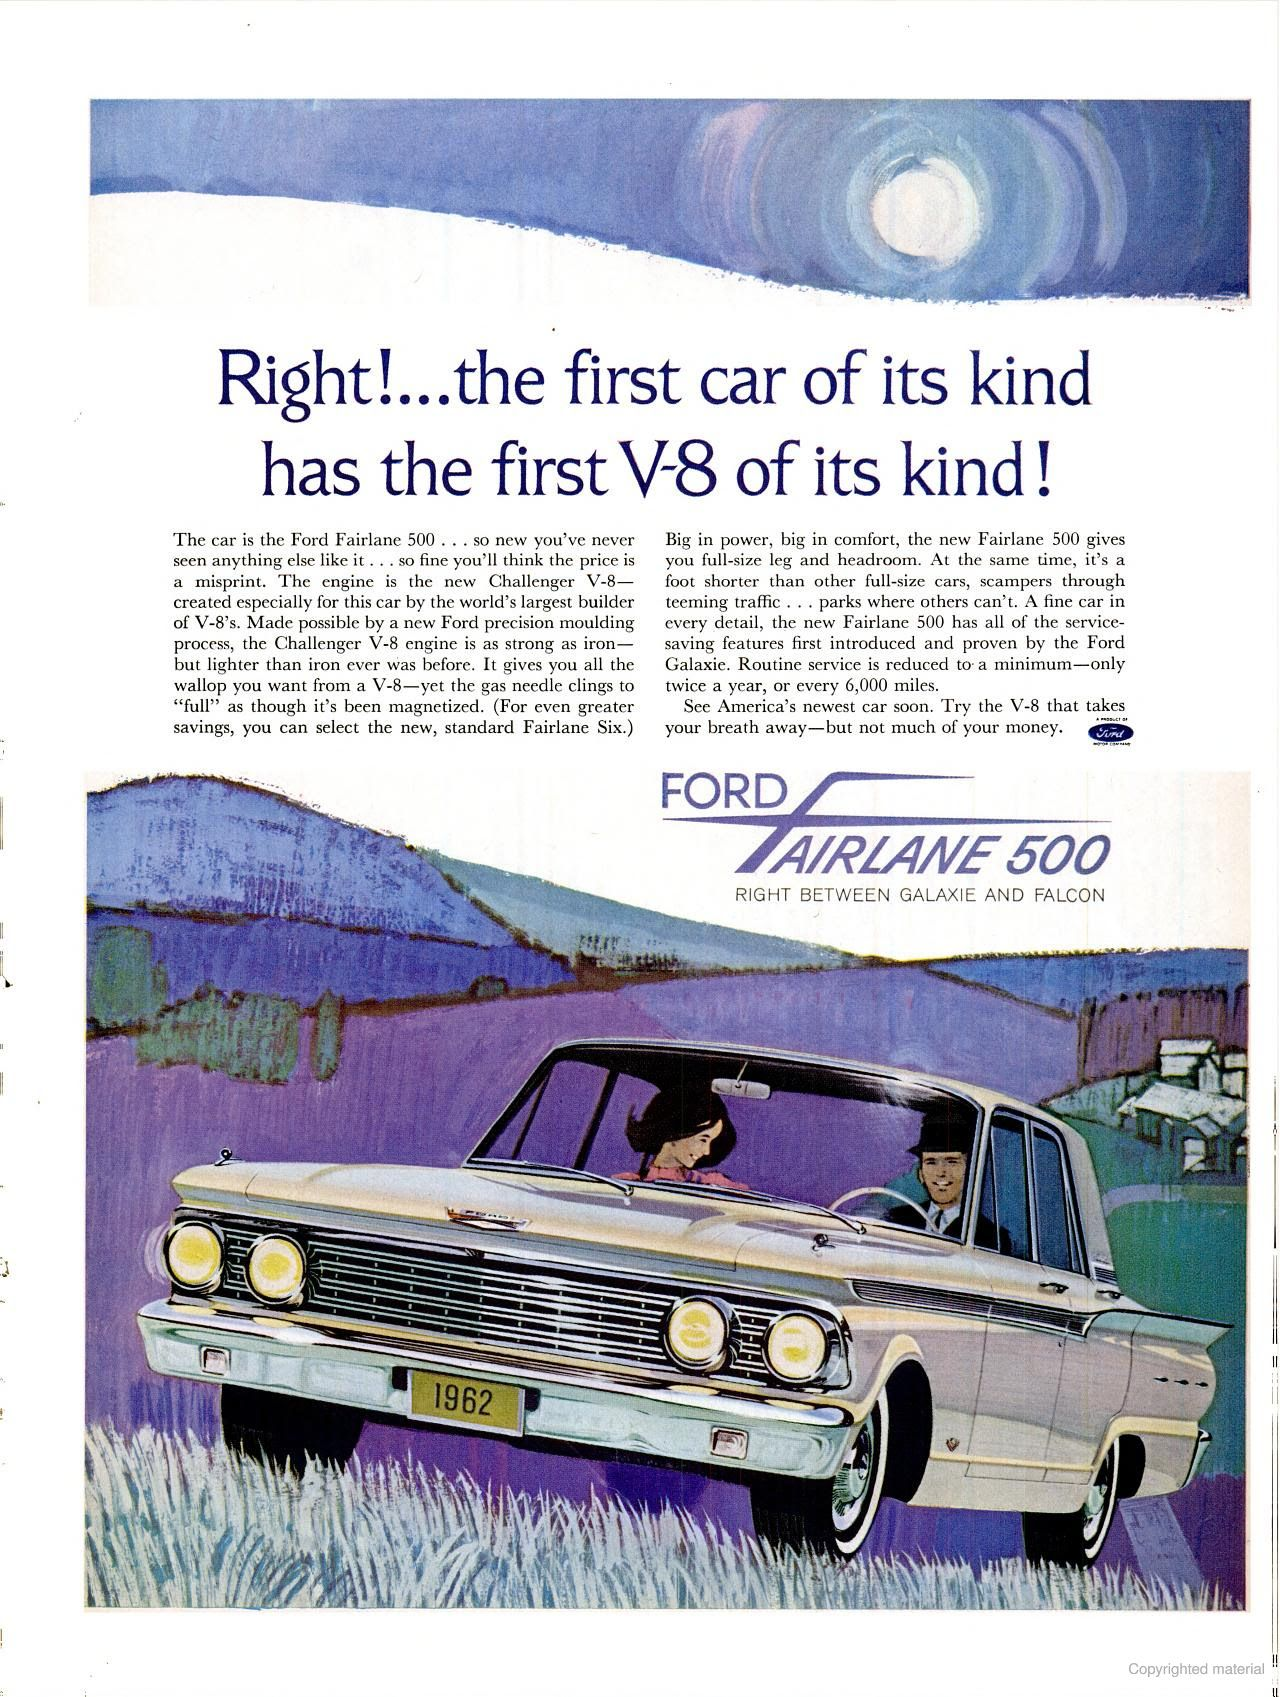 Pin By Chris G On Vintage Car Ads Ford Fairlane 500 Ford Fairlane Fairlane 500